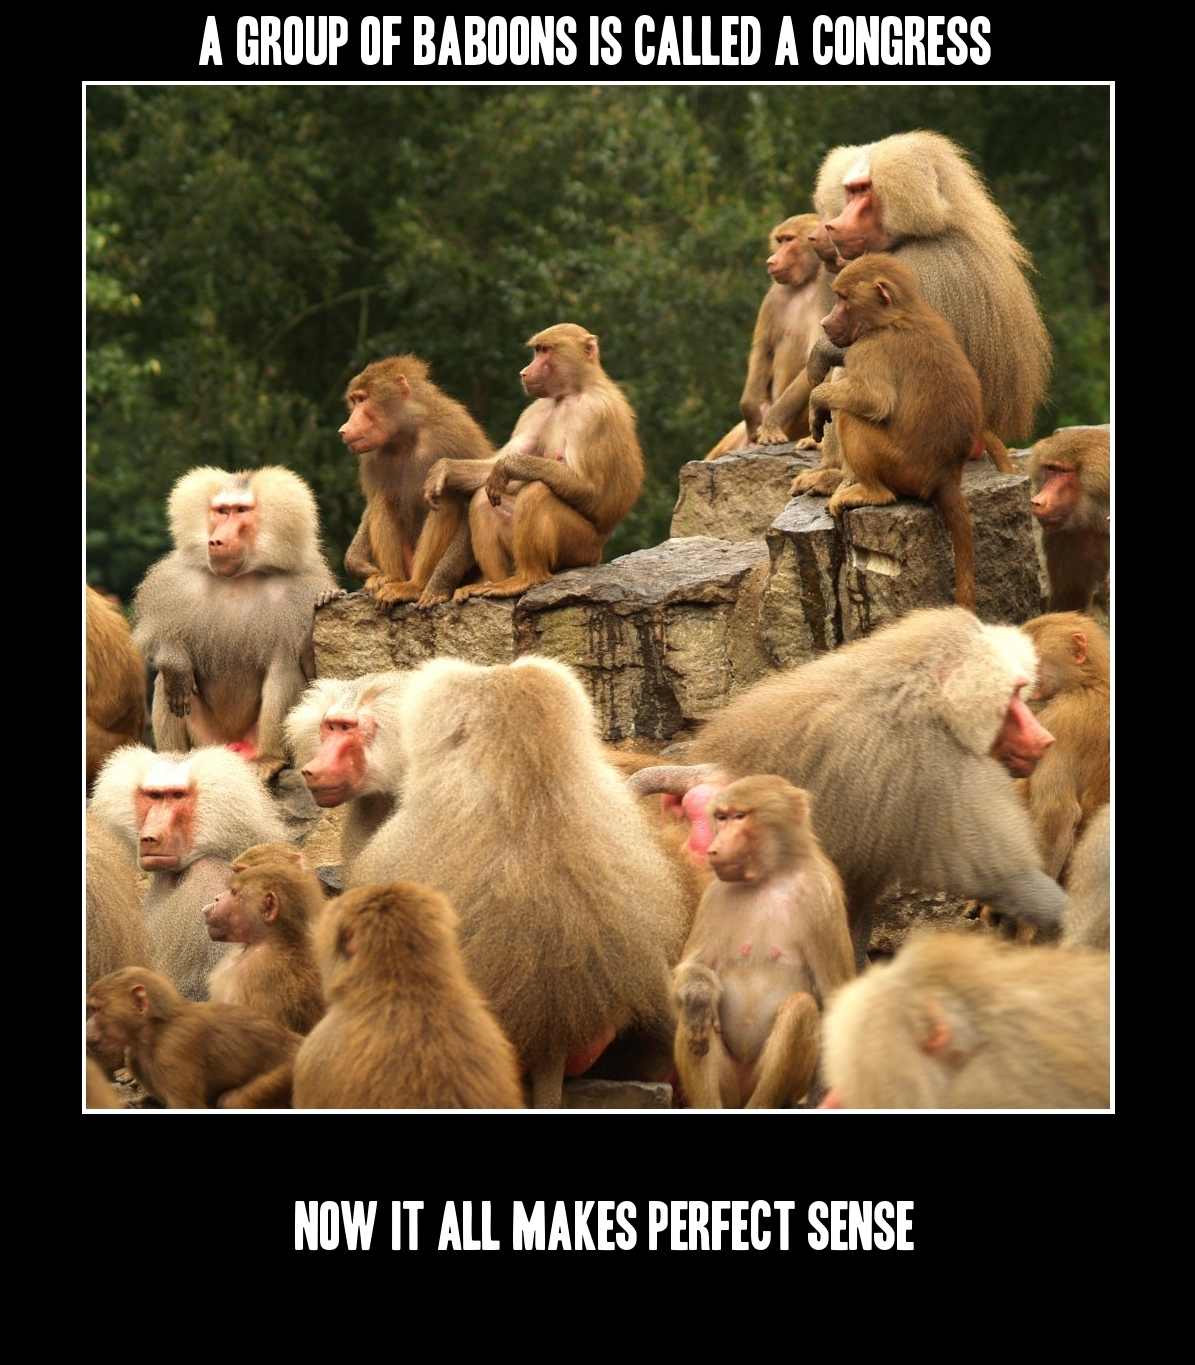 A group of baboons is called a congress.